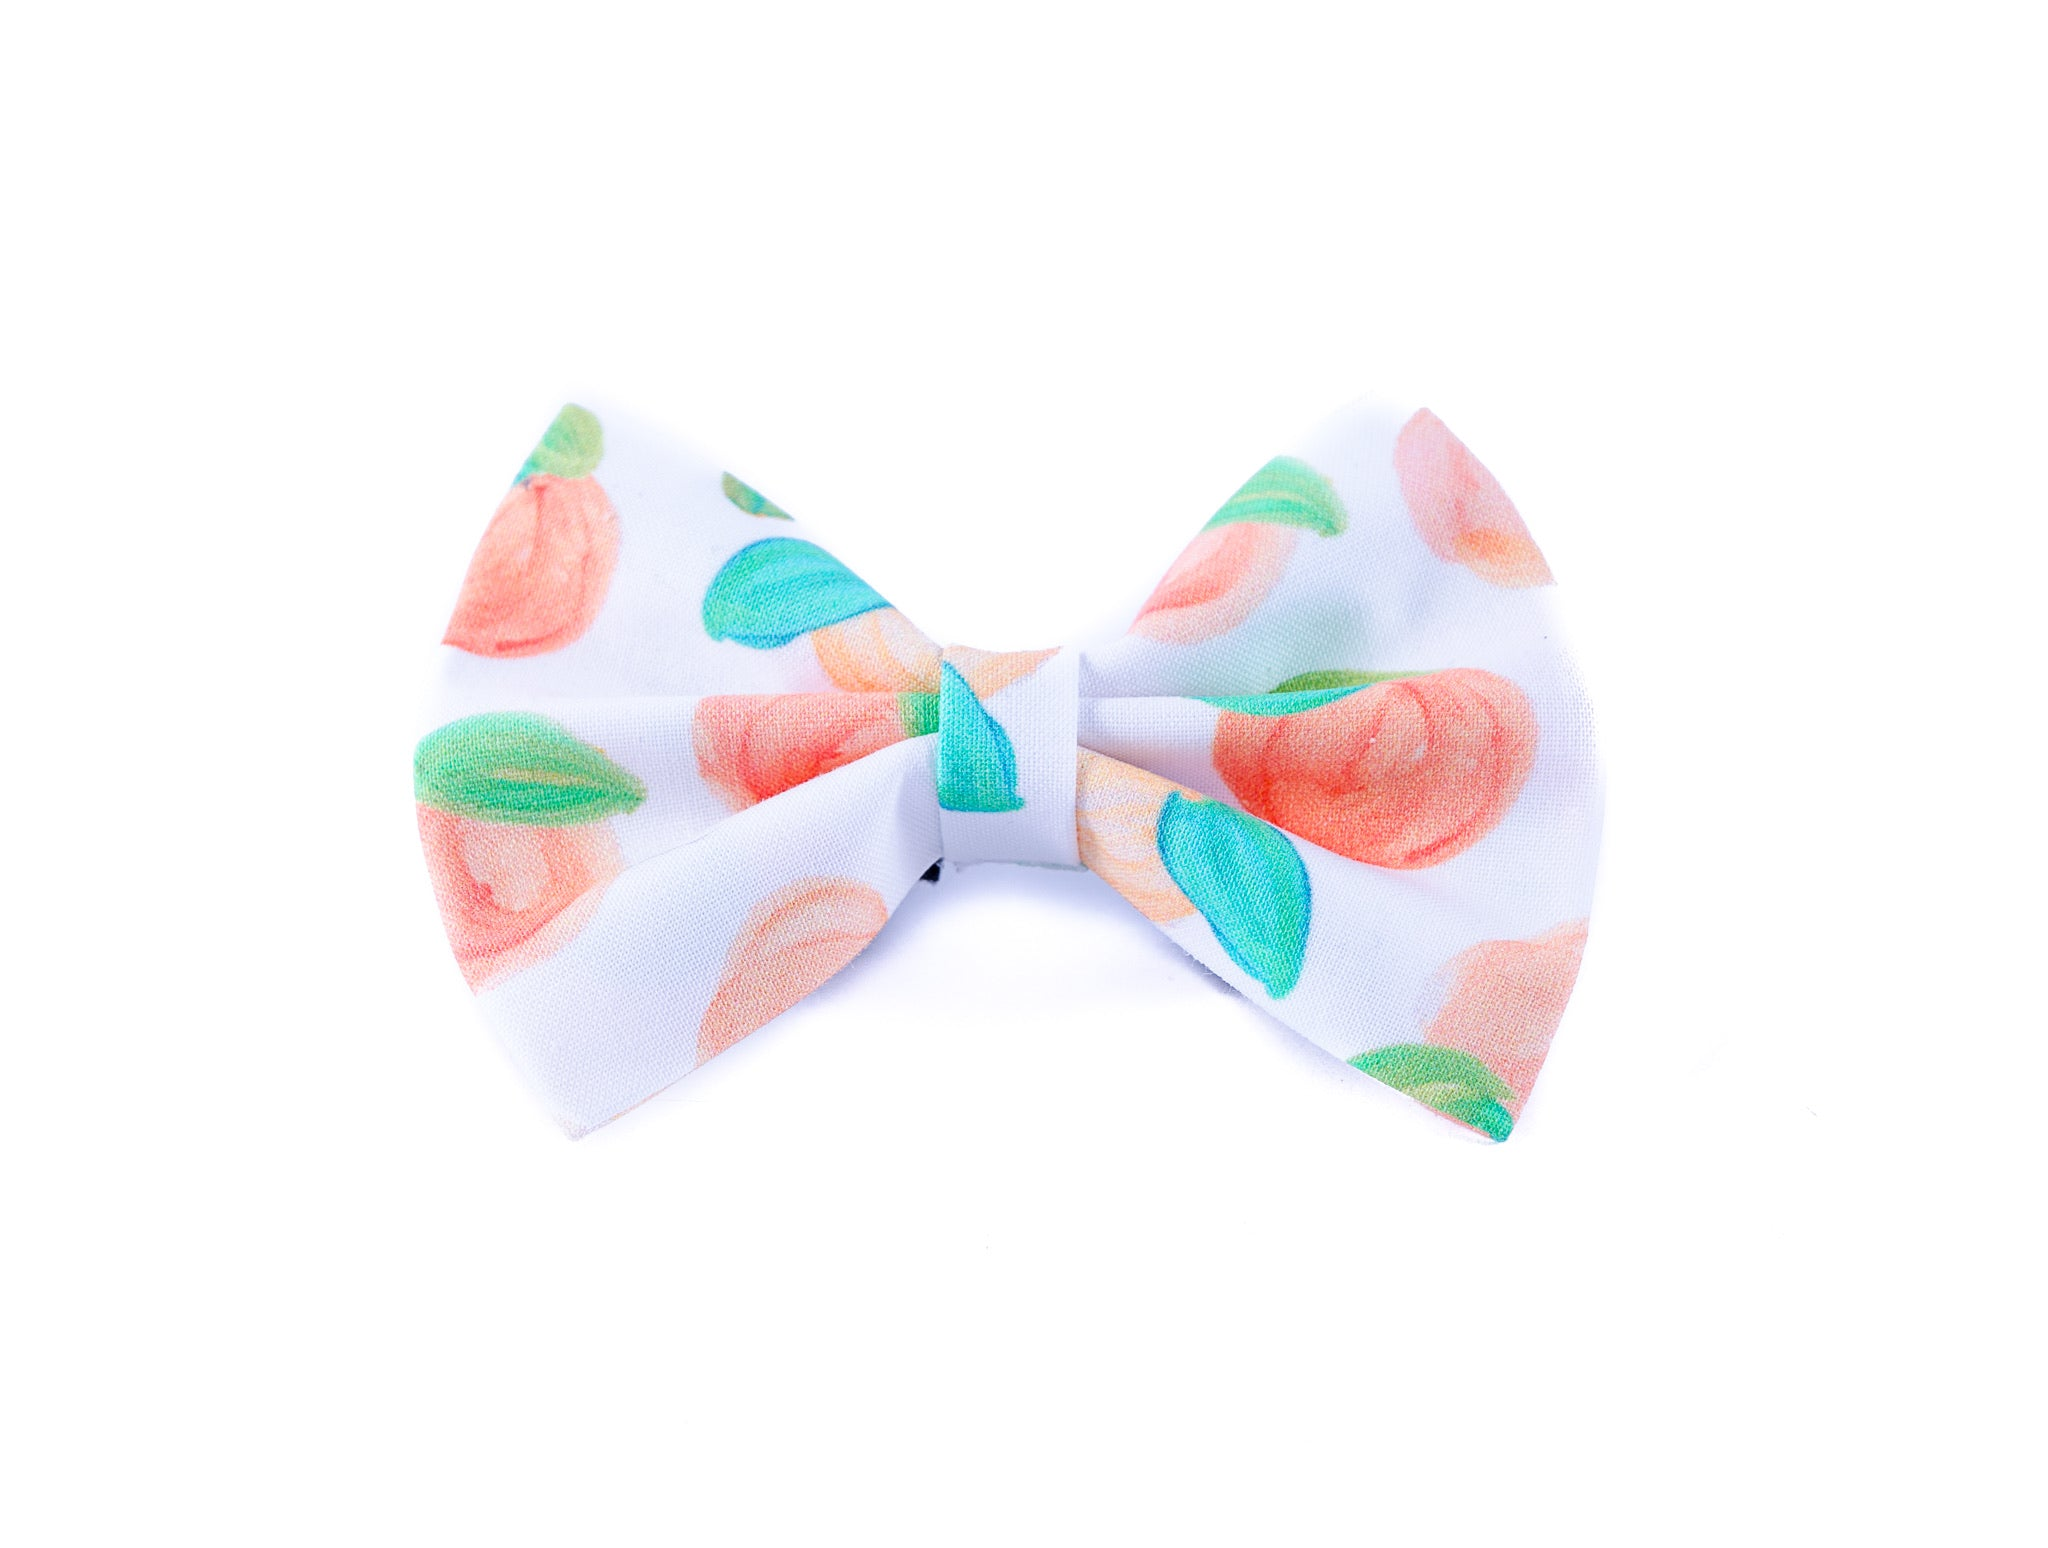 I ap-Peach-iate you 🍑 - Bow tie